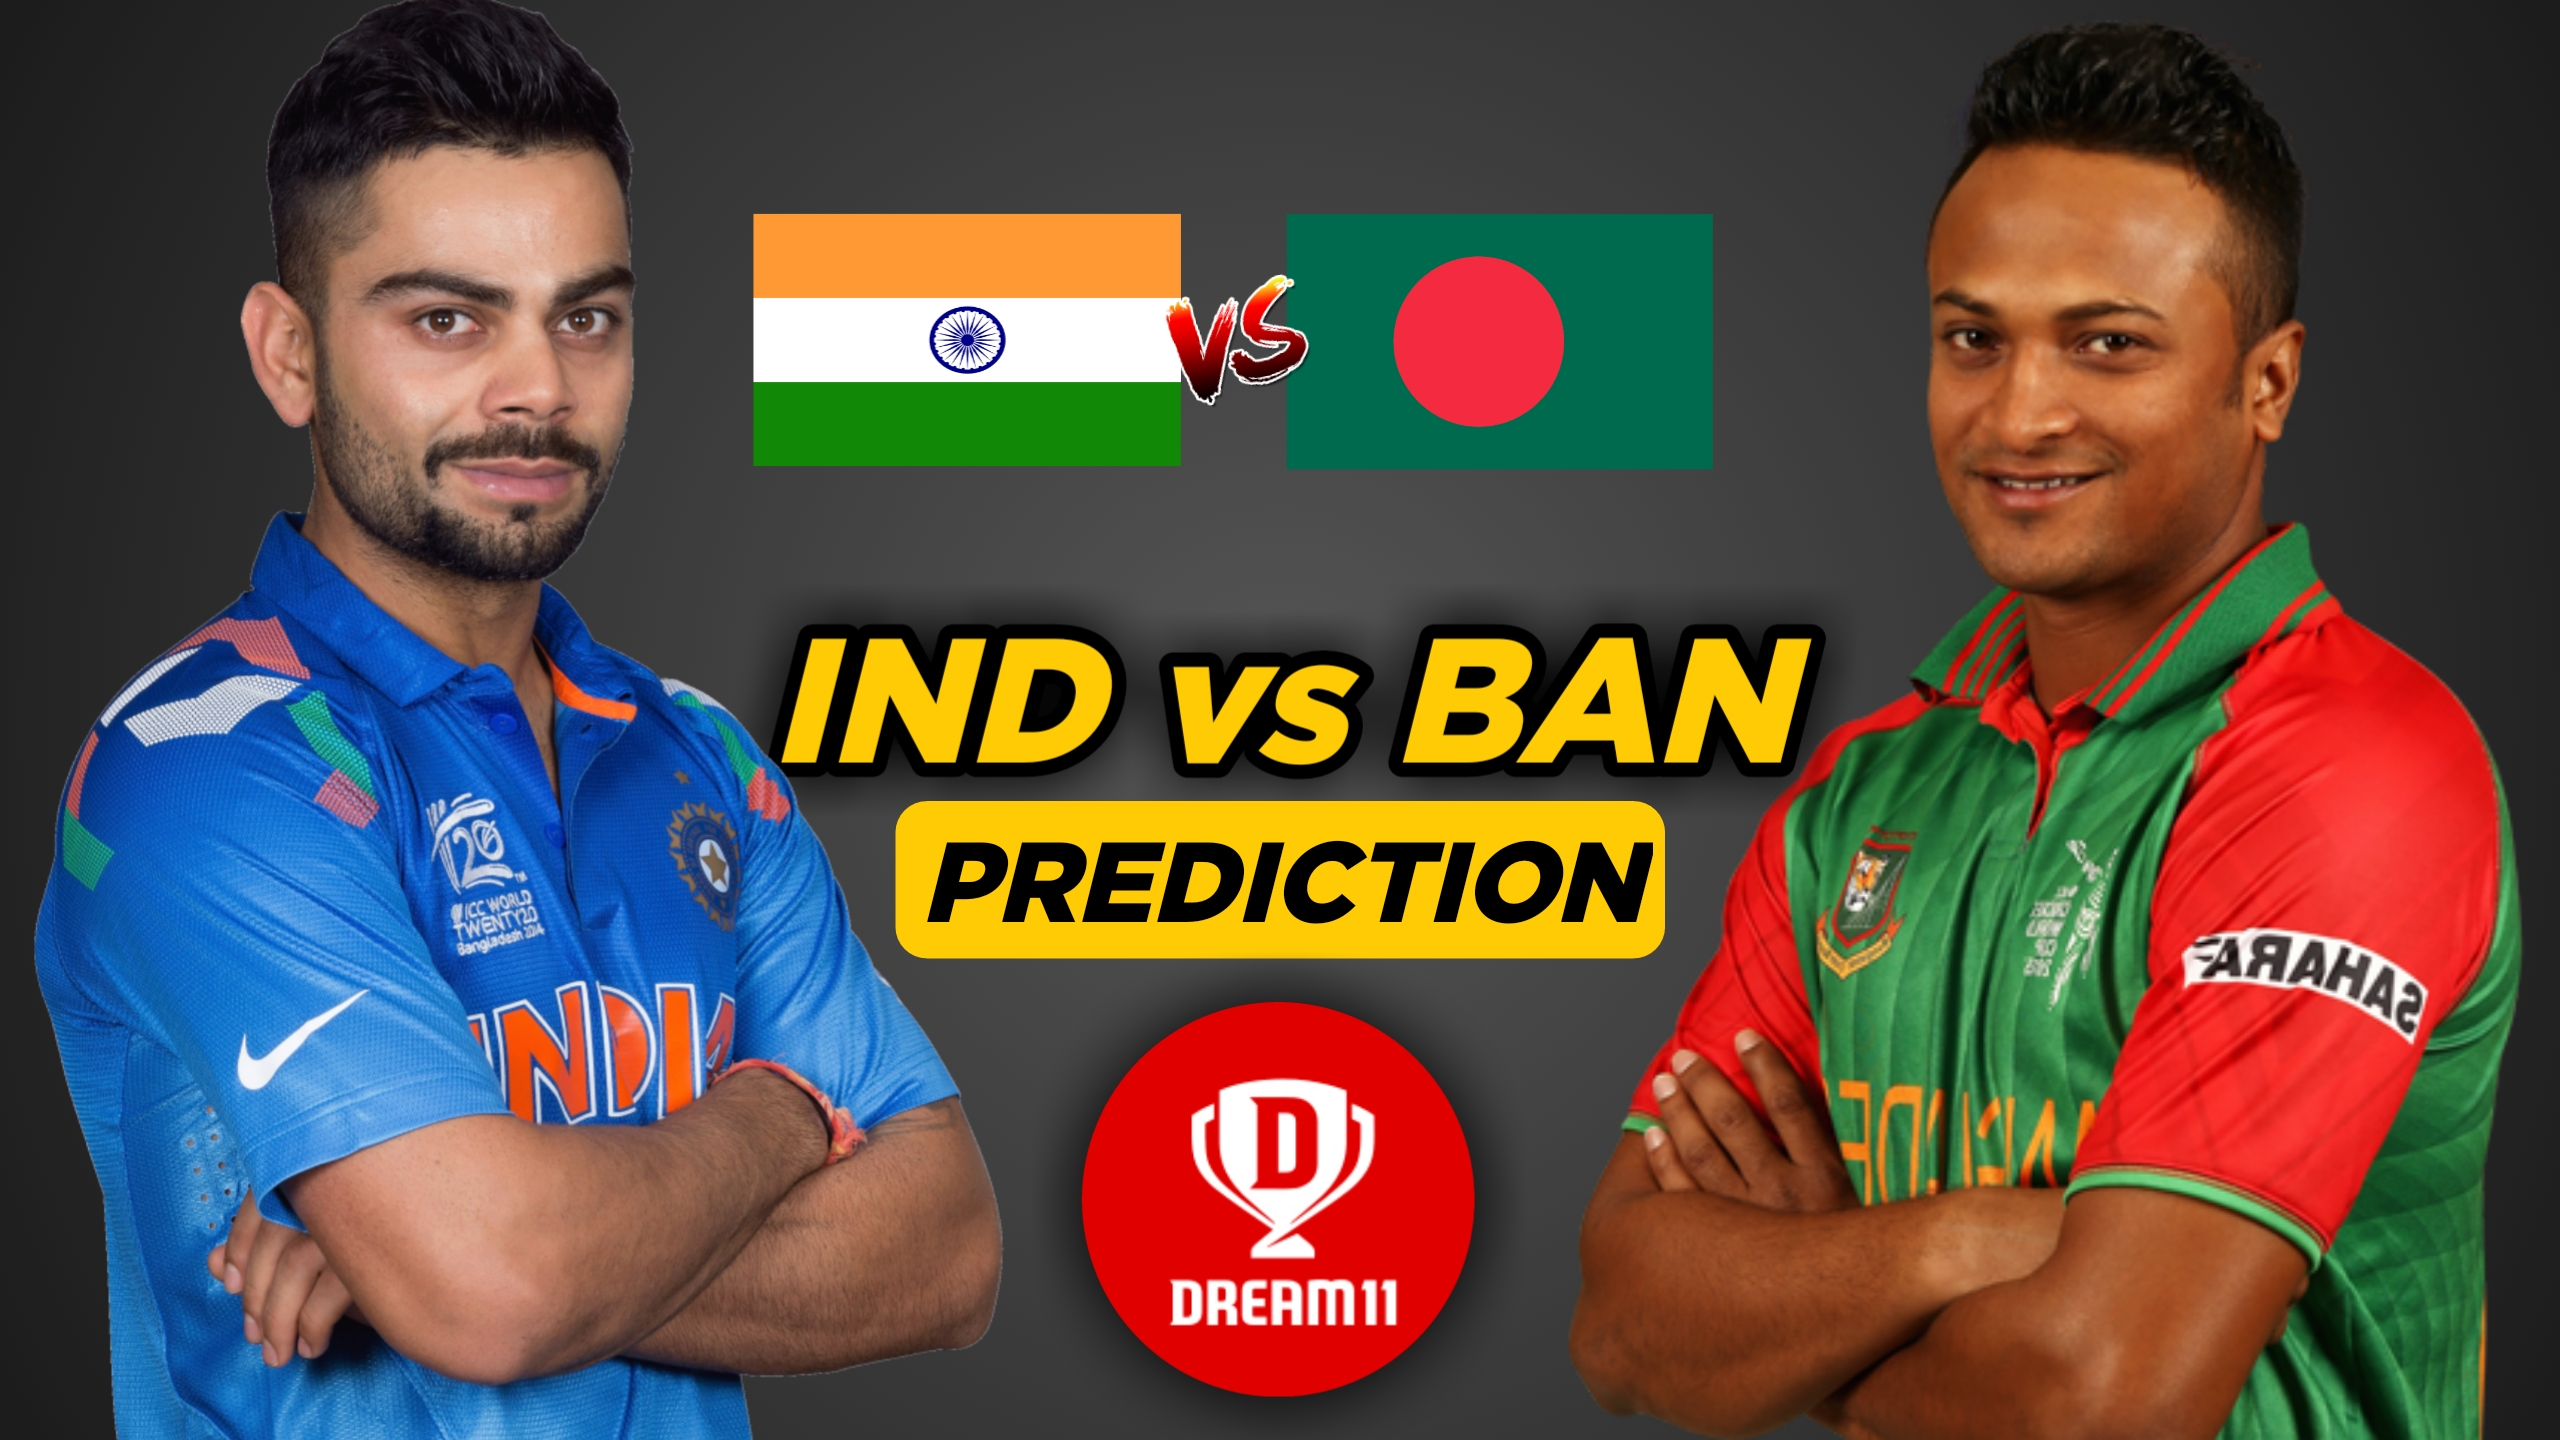 IND vs BAN 10th Warm-up – ICC Cricket World Cup 2019 Dream11 Team